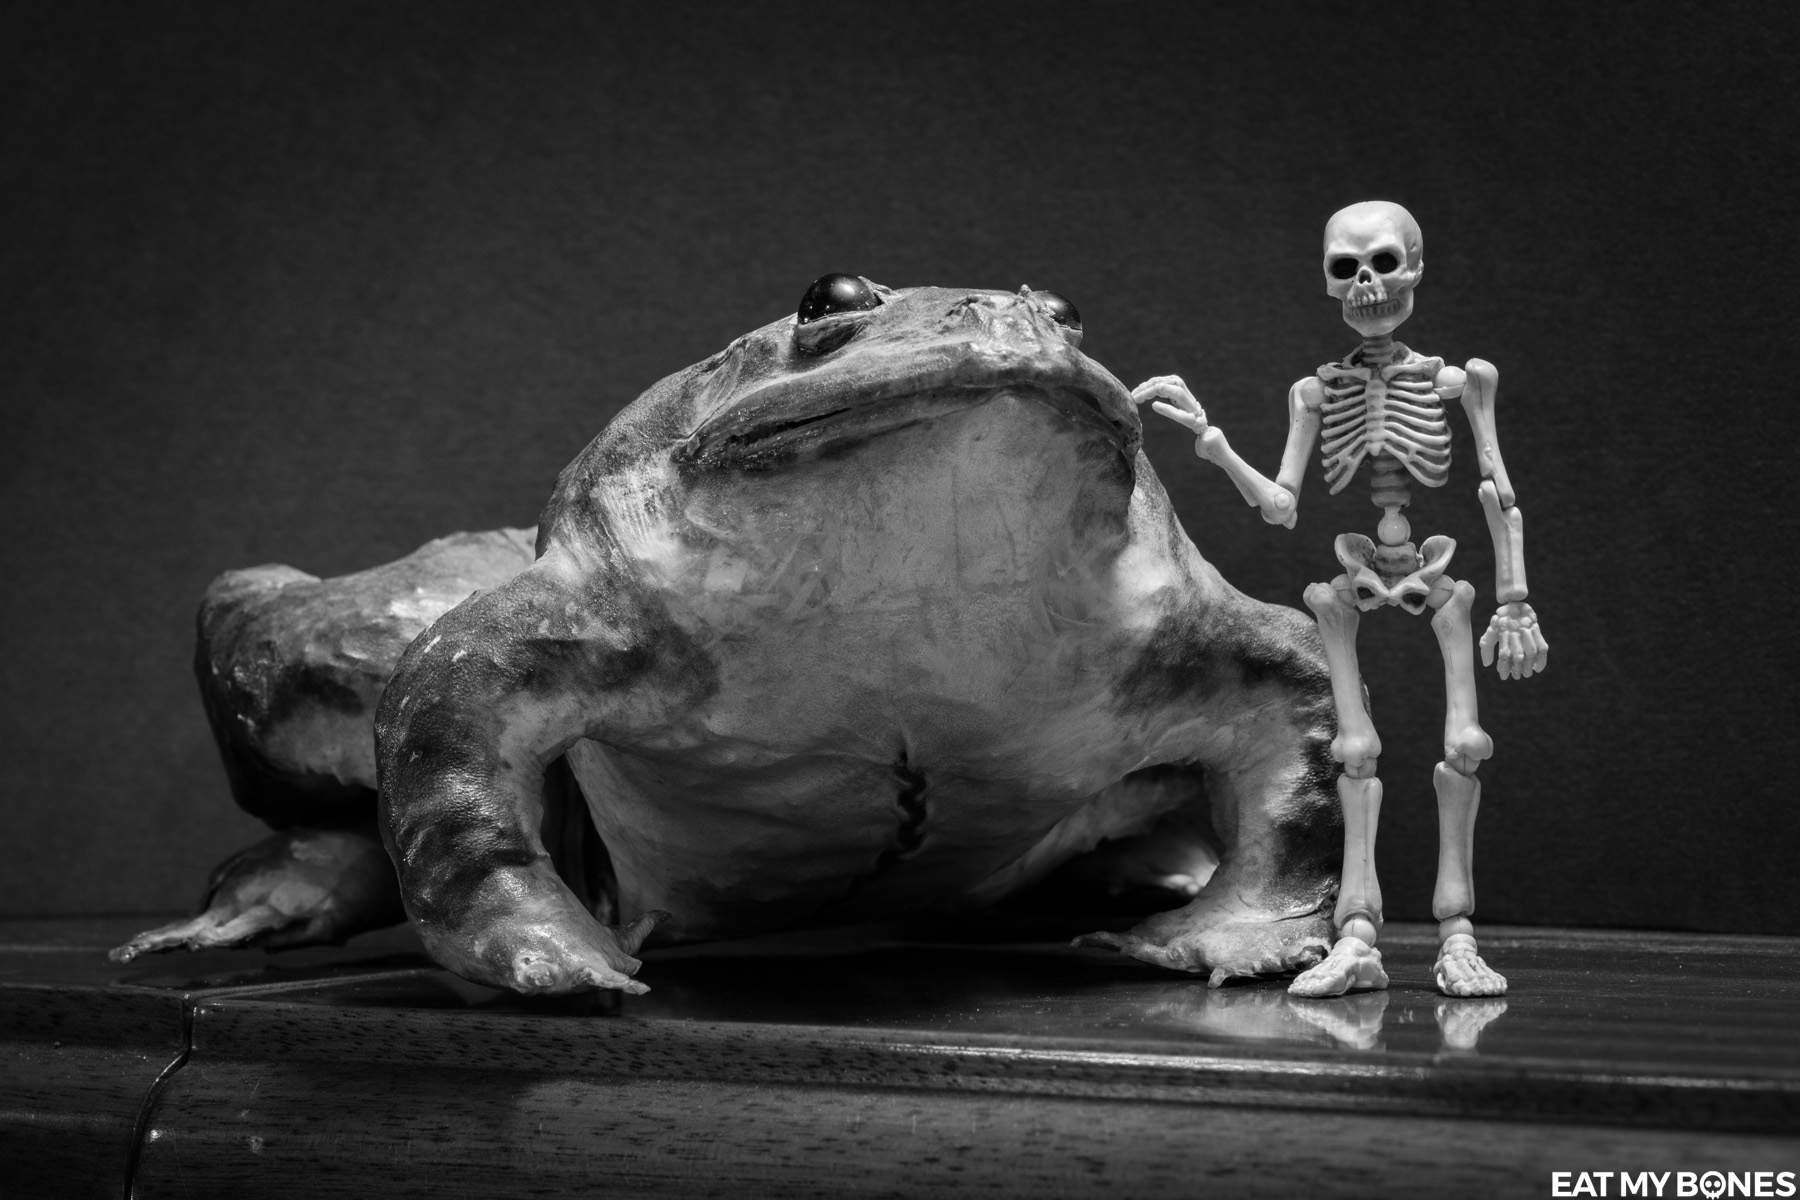 7 Tattoo - Pose Skeleton - Toy photography - Miniature - Eat my Bones